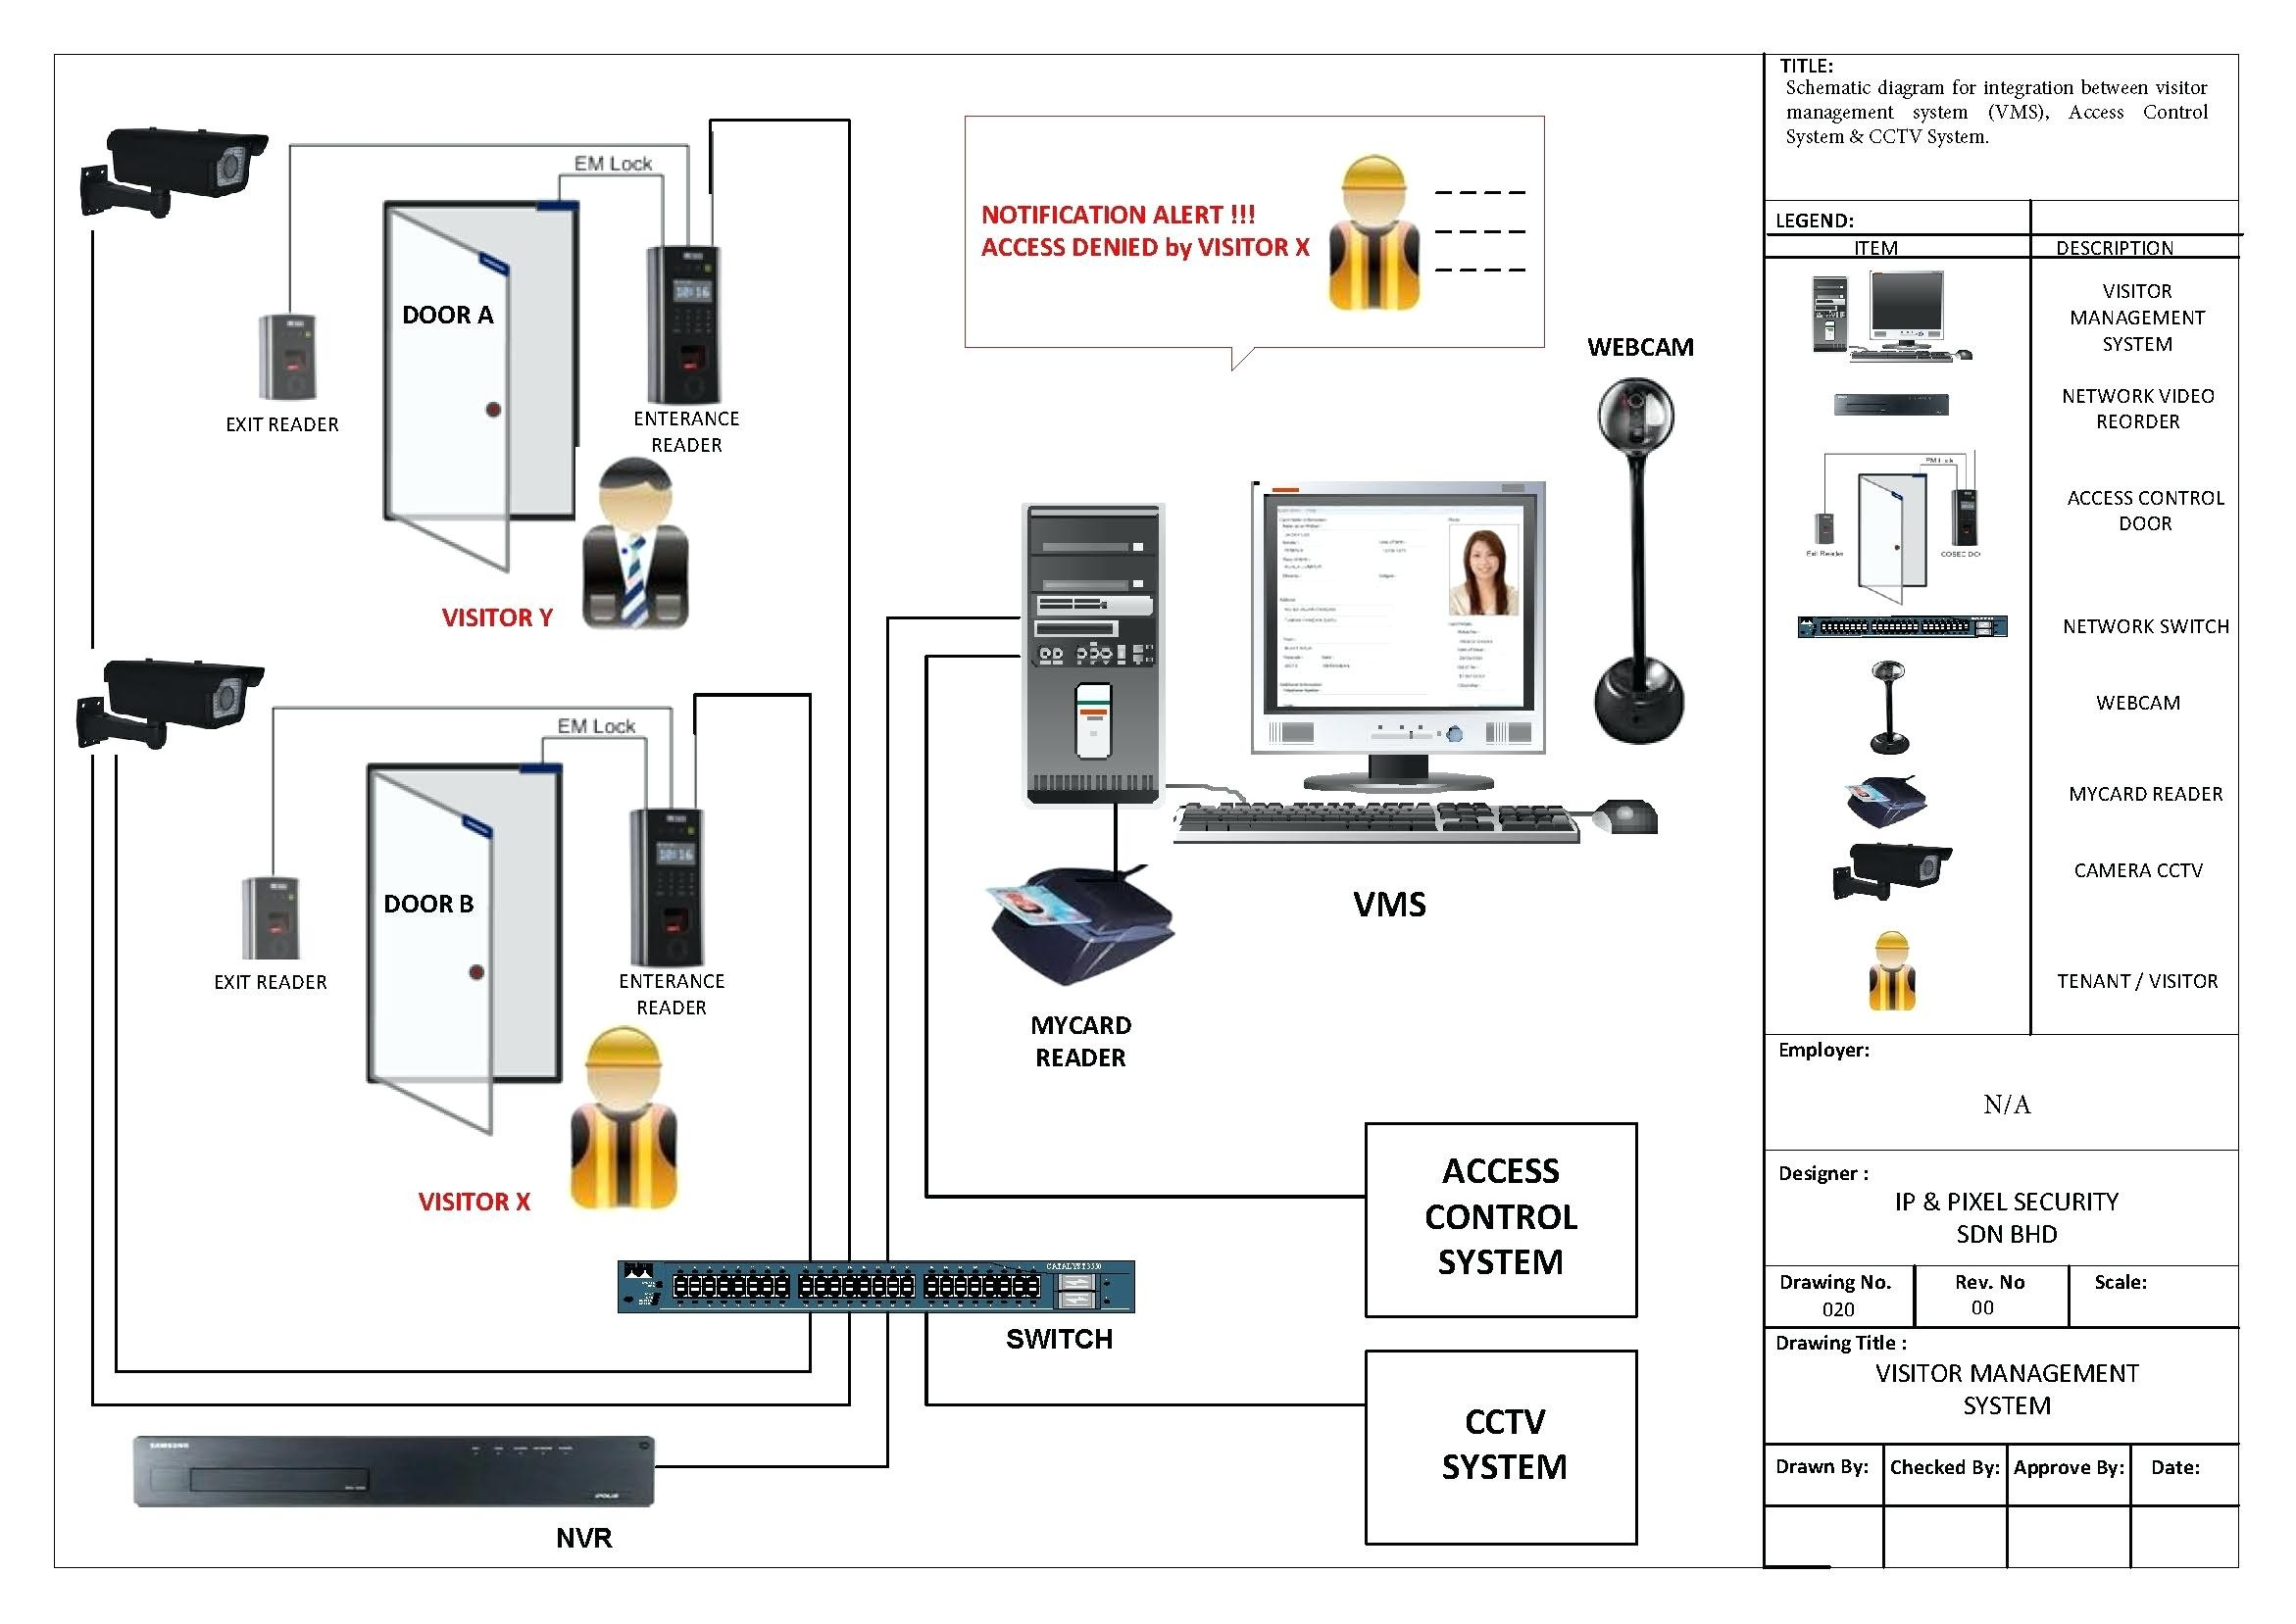 Security camera wiring diagram rj11 wire center security camera wiring diagram security camera wiring diagram rj11 rh detoxicrecenze com rj11 phone jack wiring using rj11 cat5 wiring diagram ccuart Choice Image